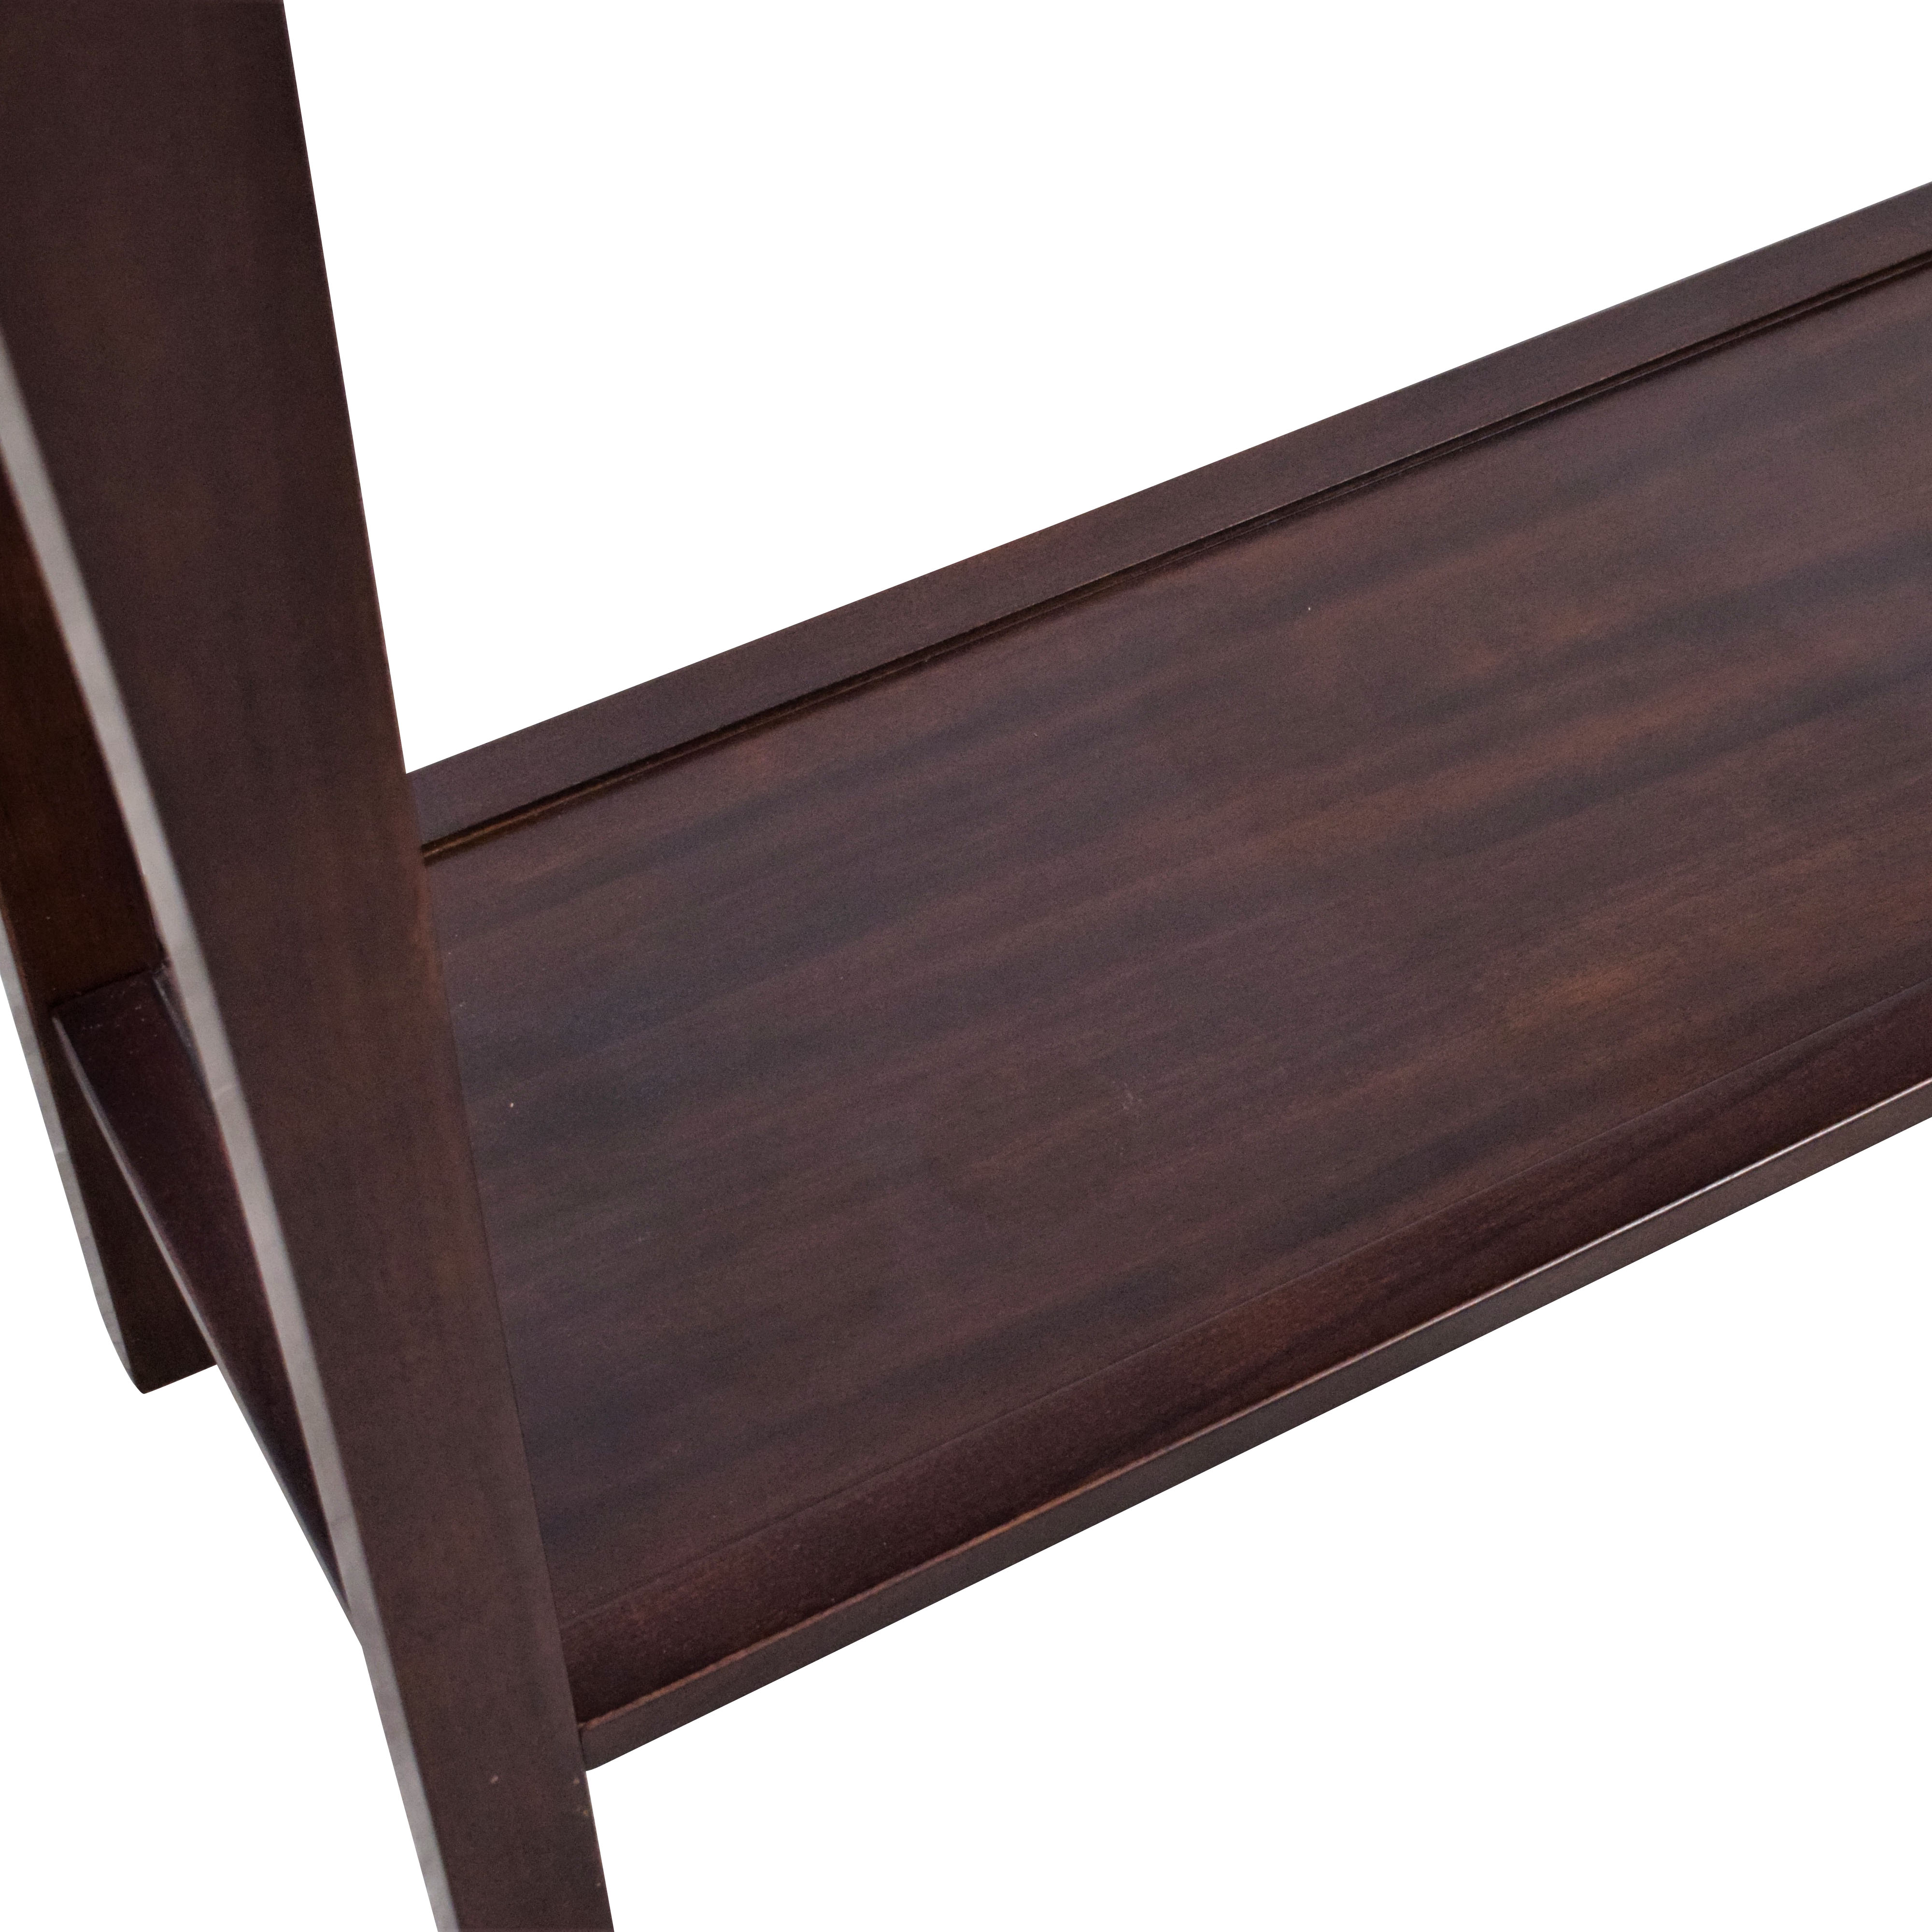 Pottery Barn Pottery Barn Two Level Console Table dimensions